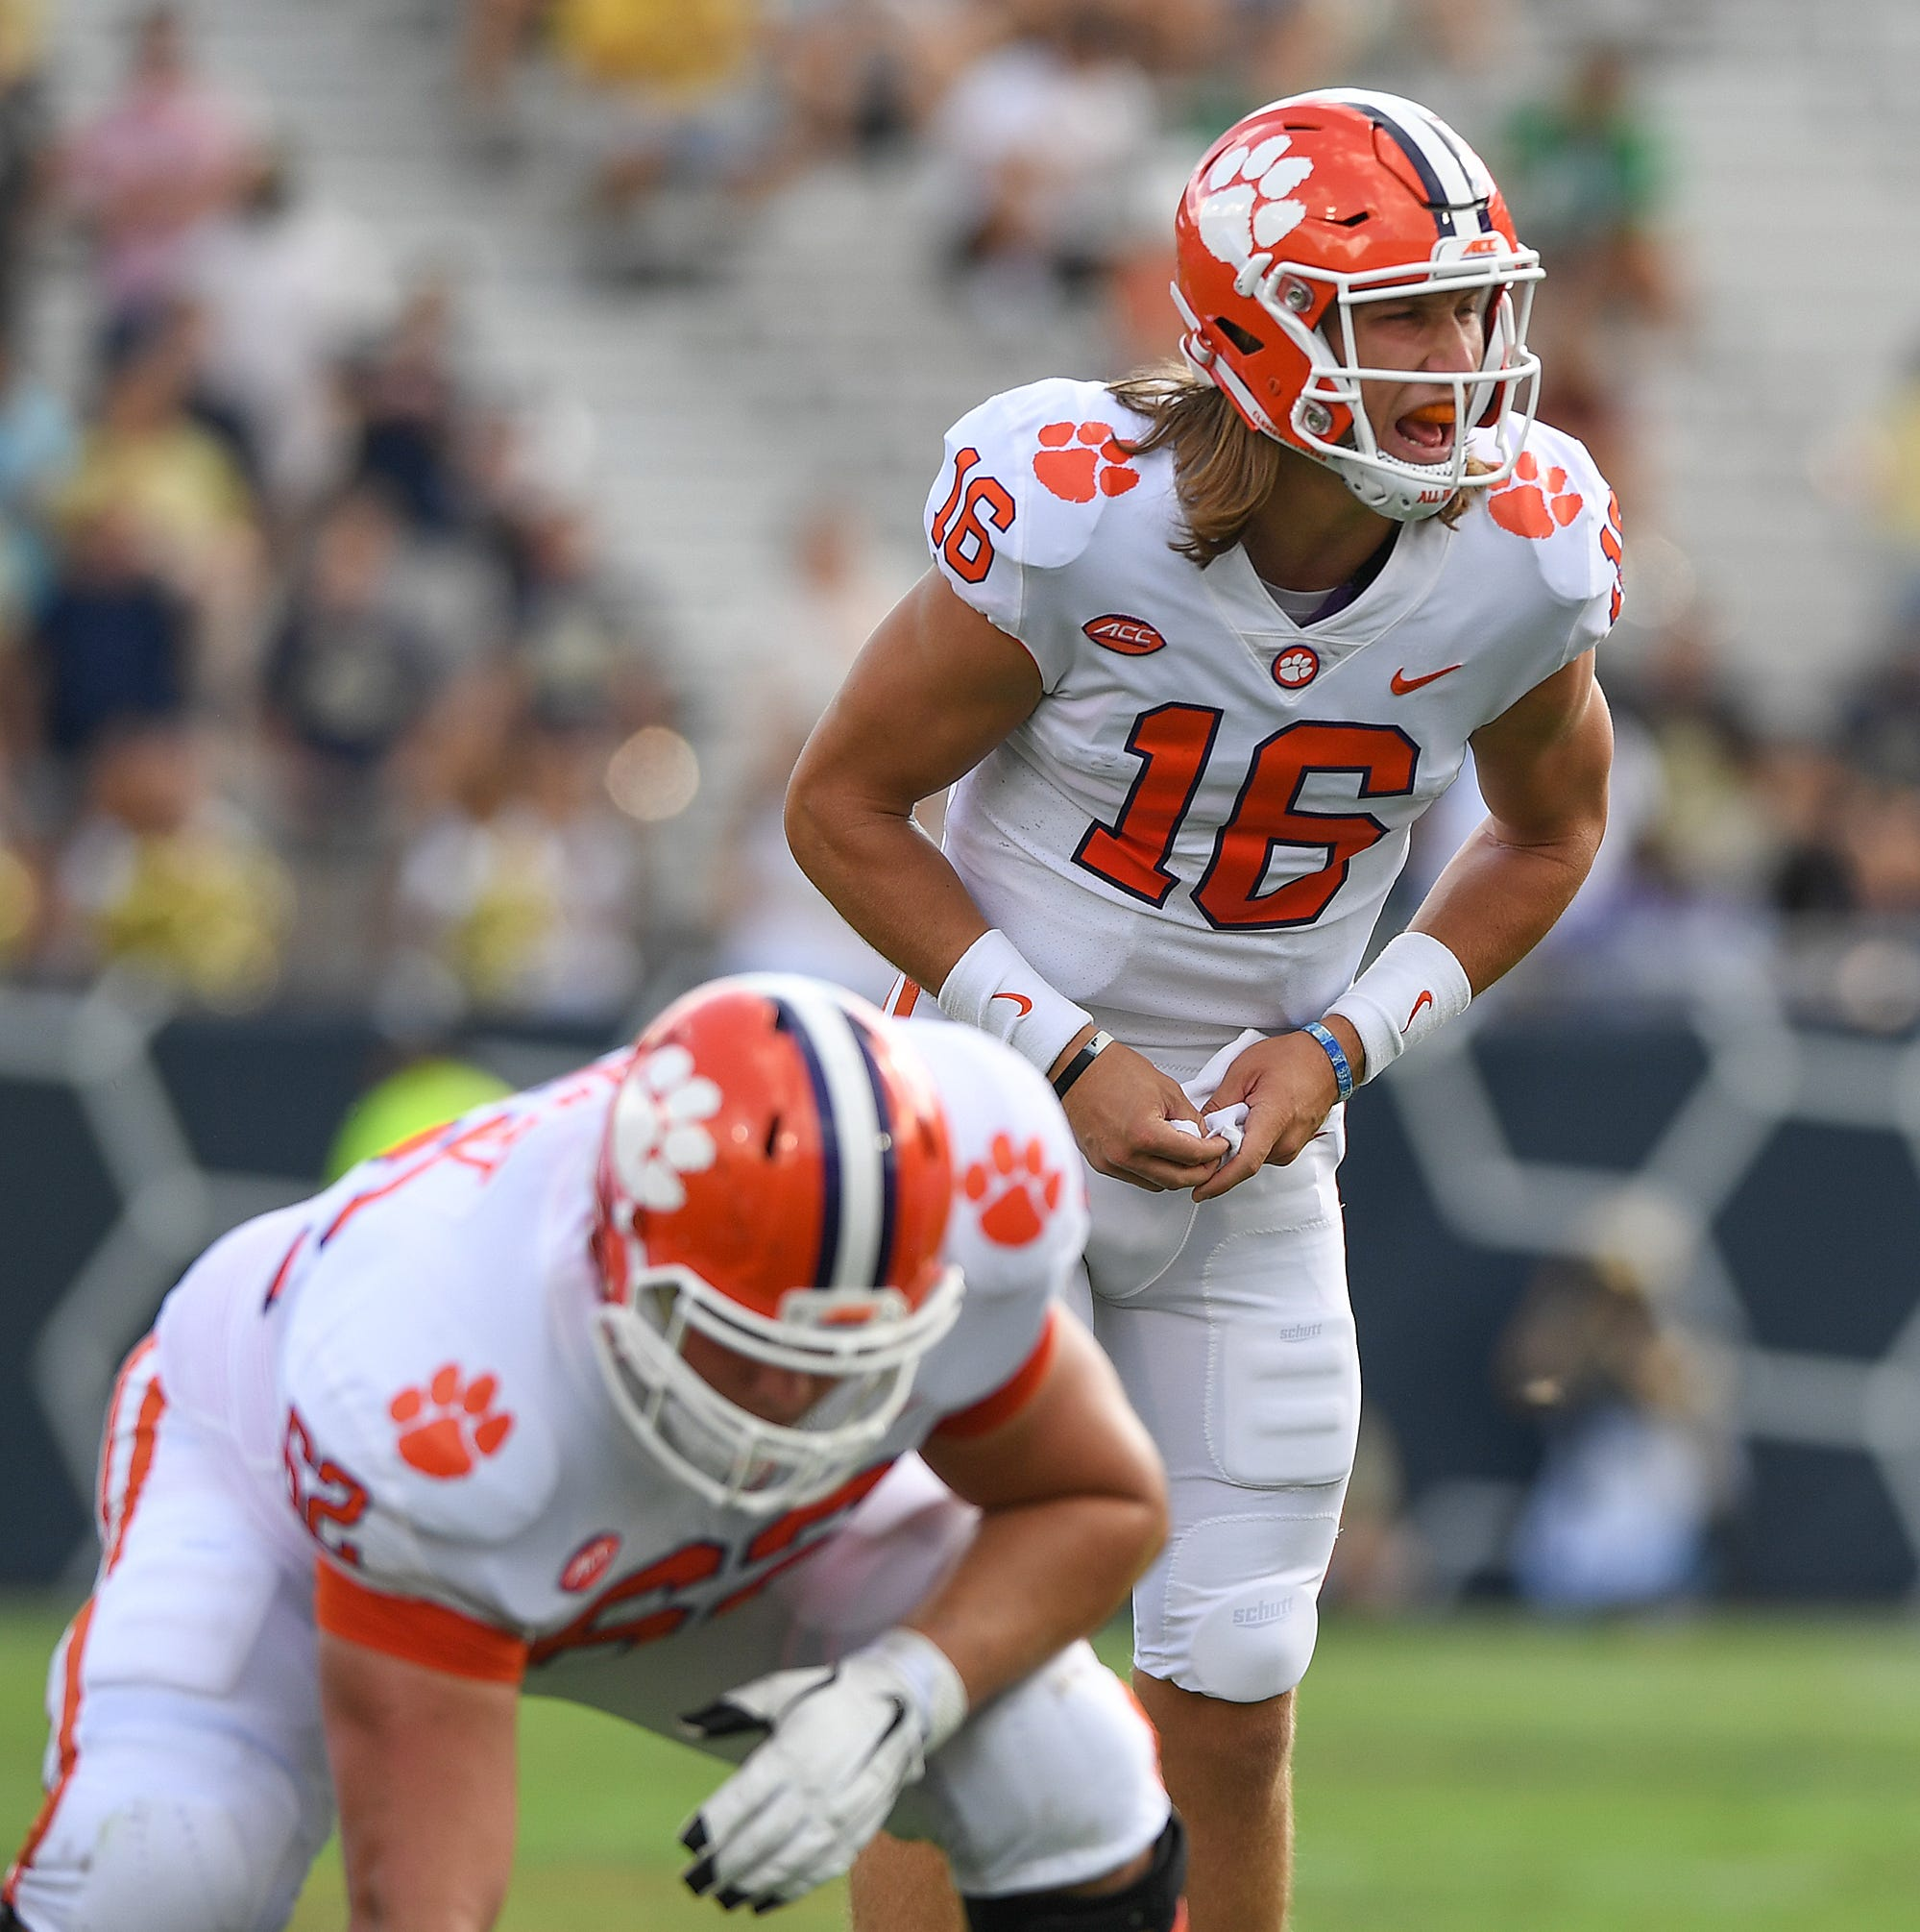 Clemson Football: Under-the-radar stats from Georgia Tech game